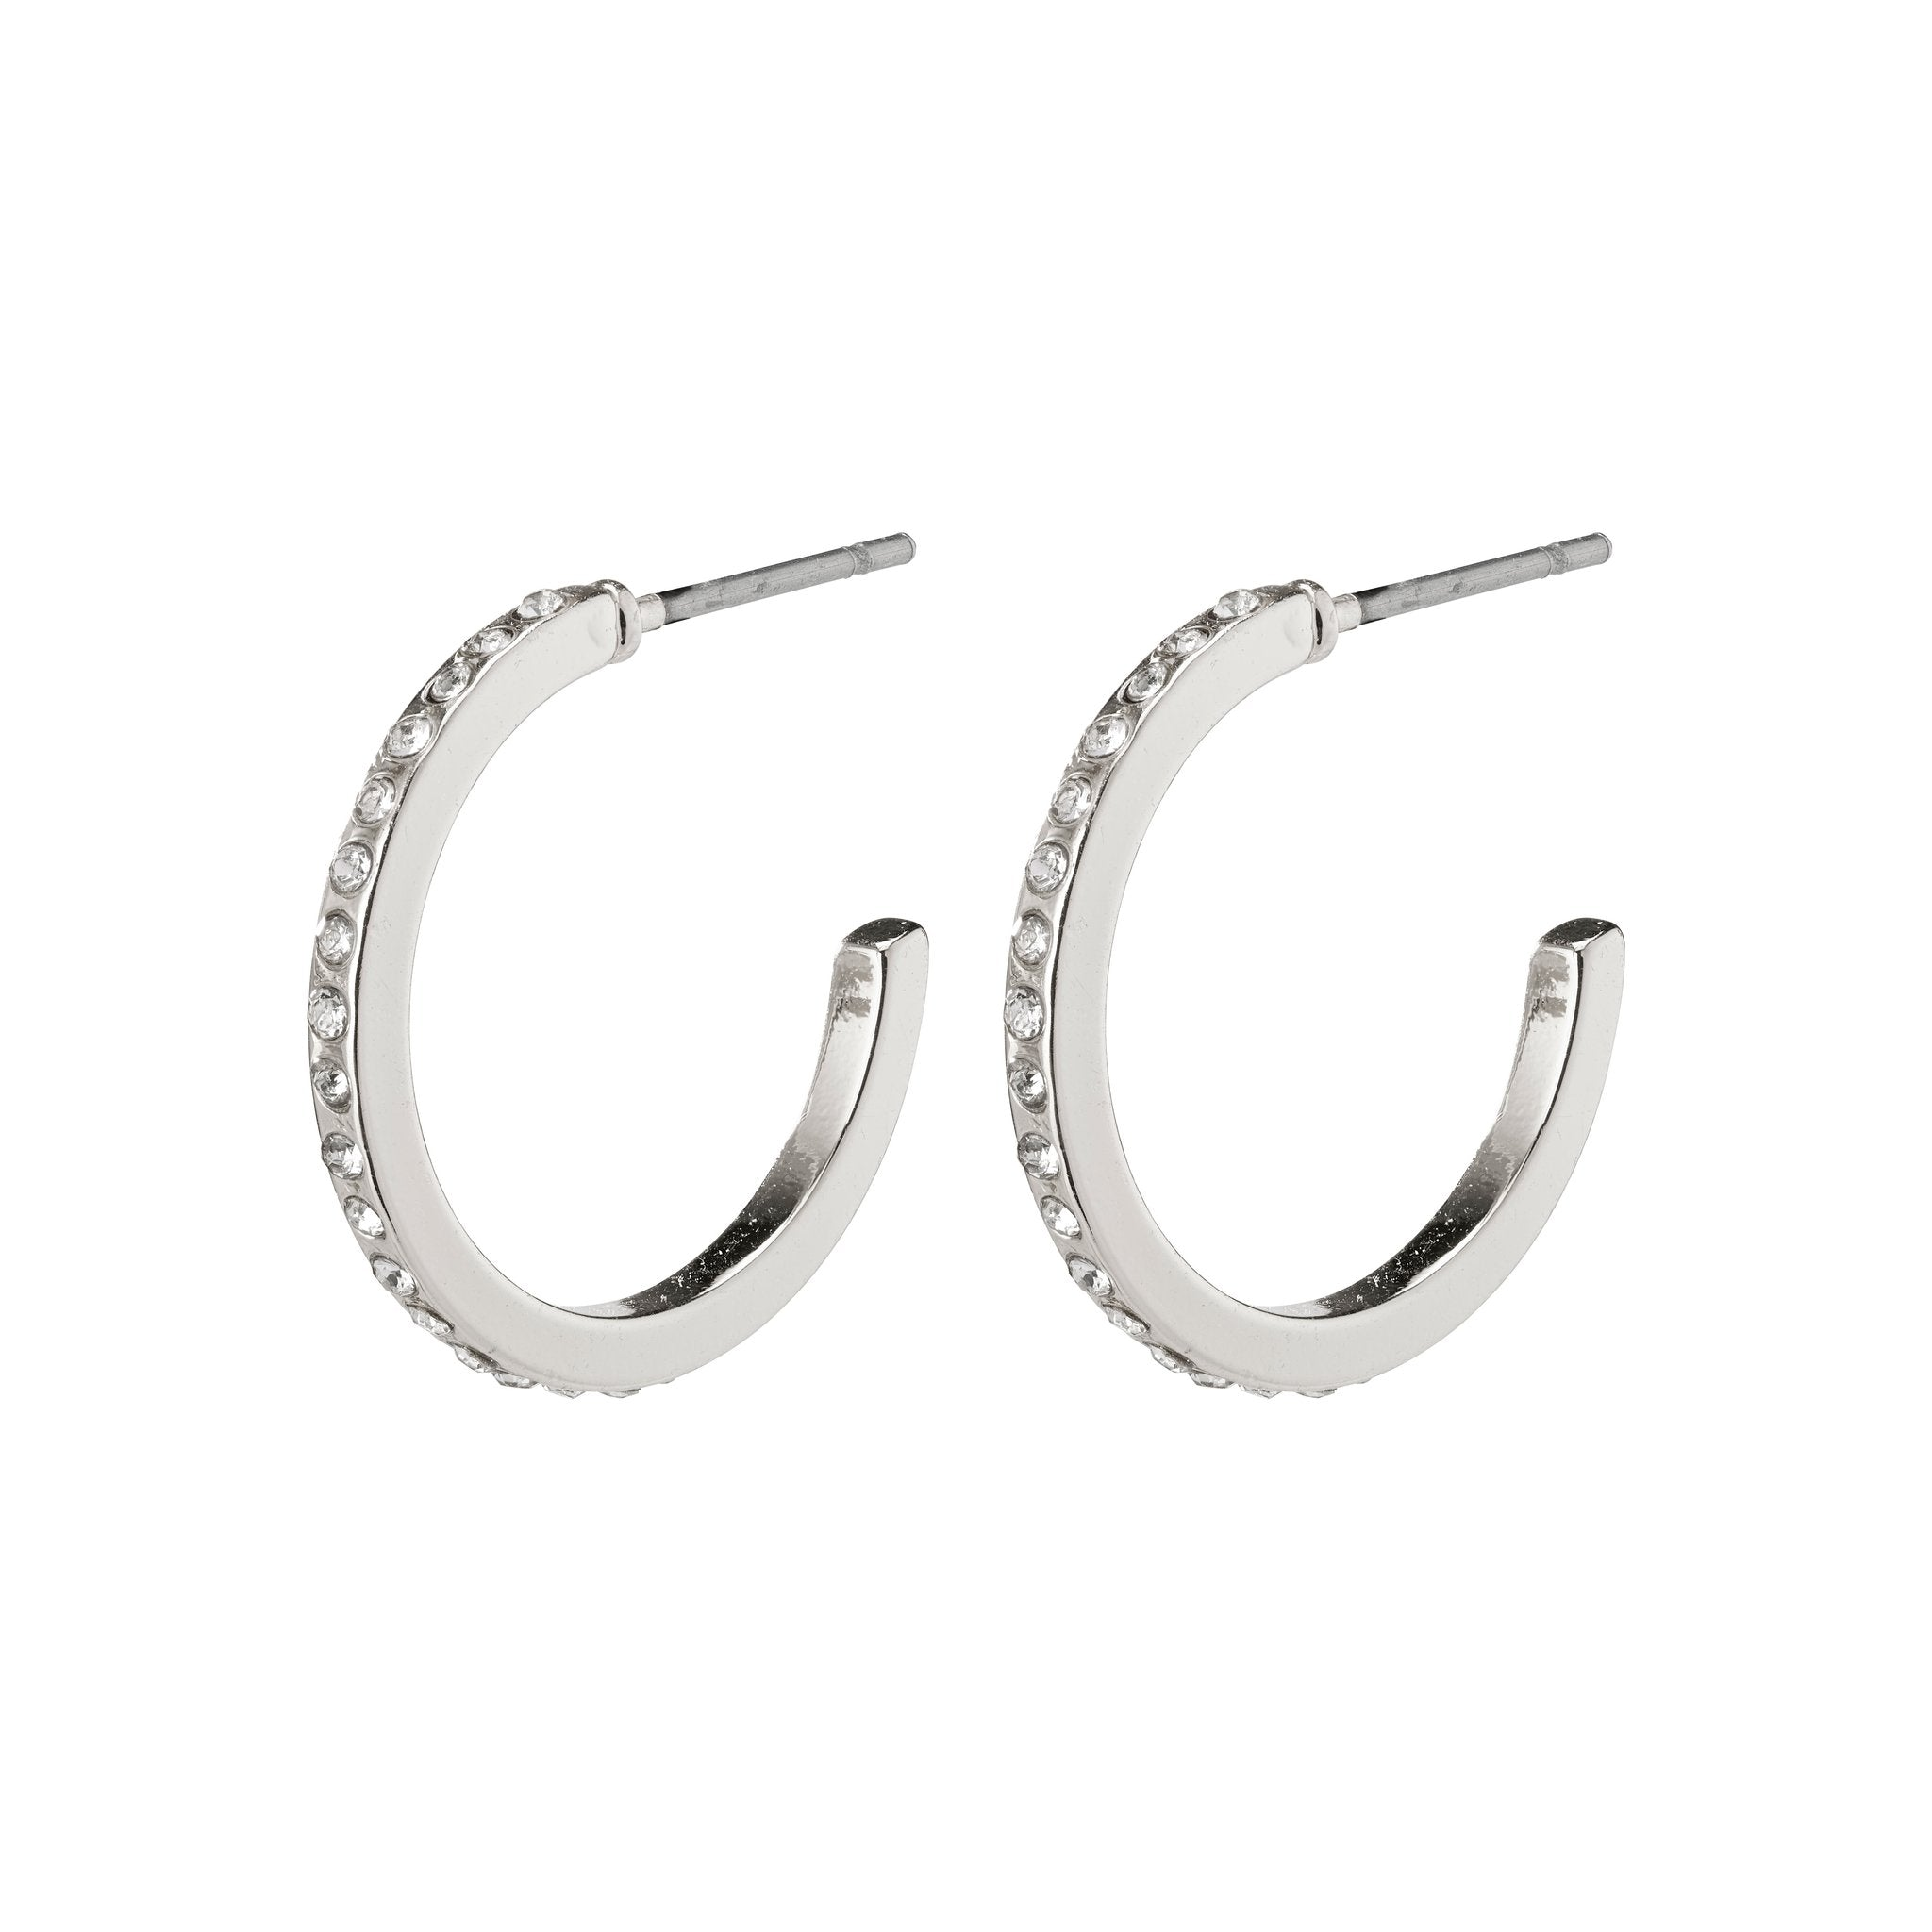 Roberta Pi Earrings - Silver Plated Crystal - 17mm